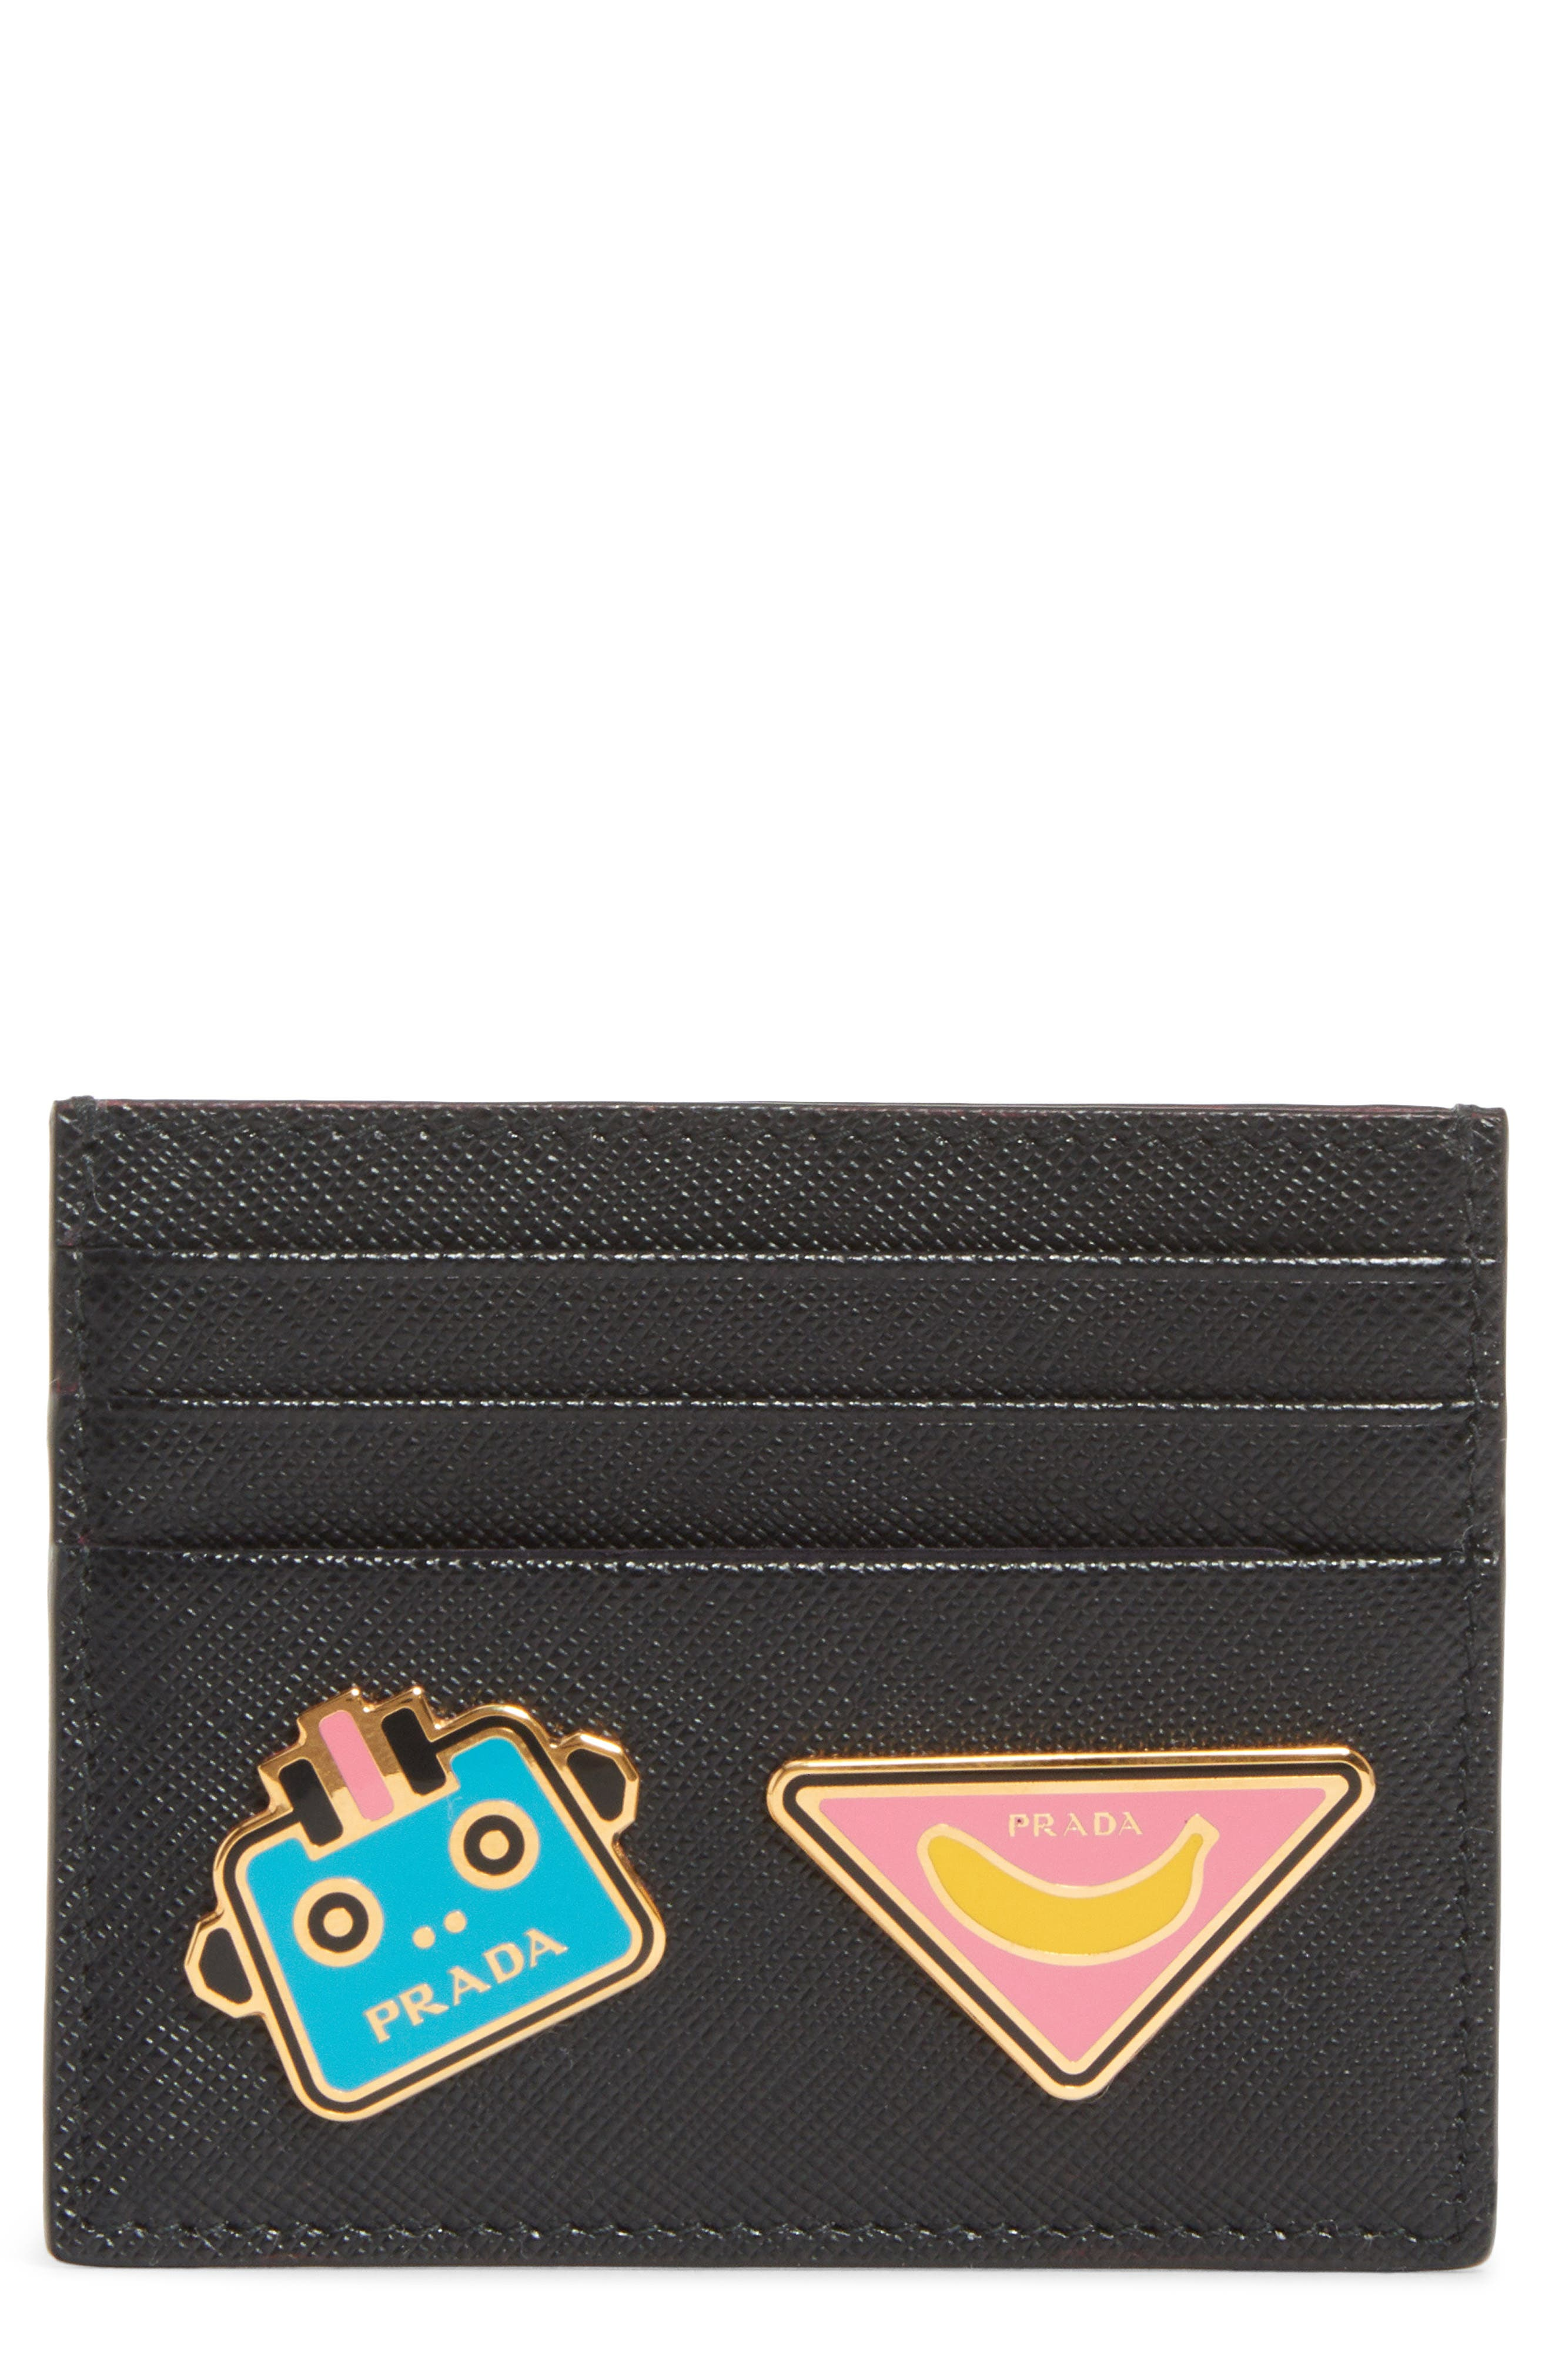 Embellished Saffiano Leather Card Case,                             Main thumbnail 1, color,                             001